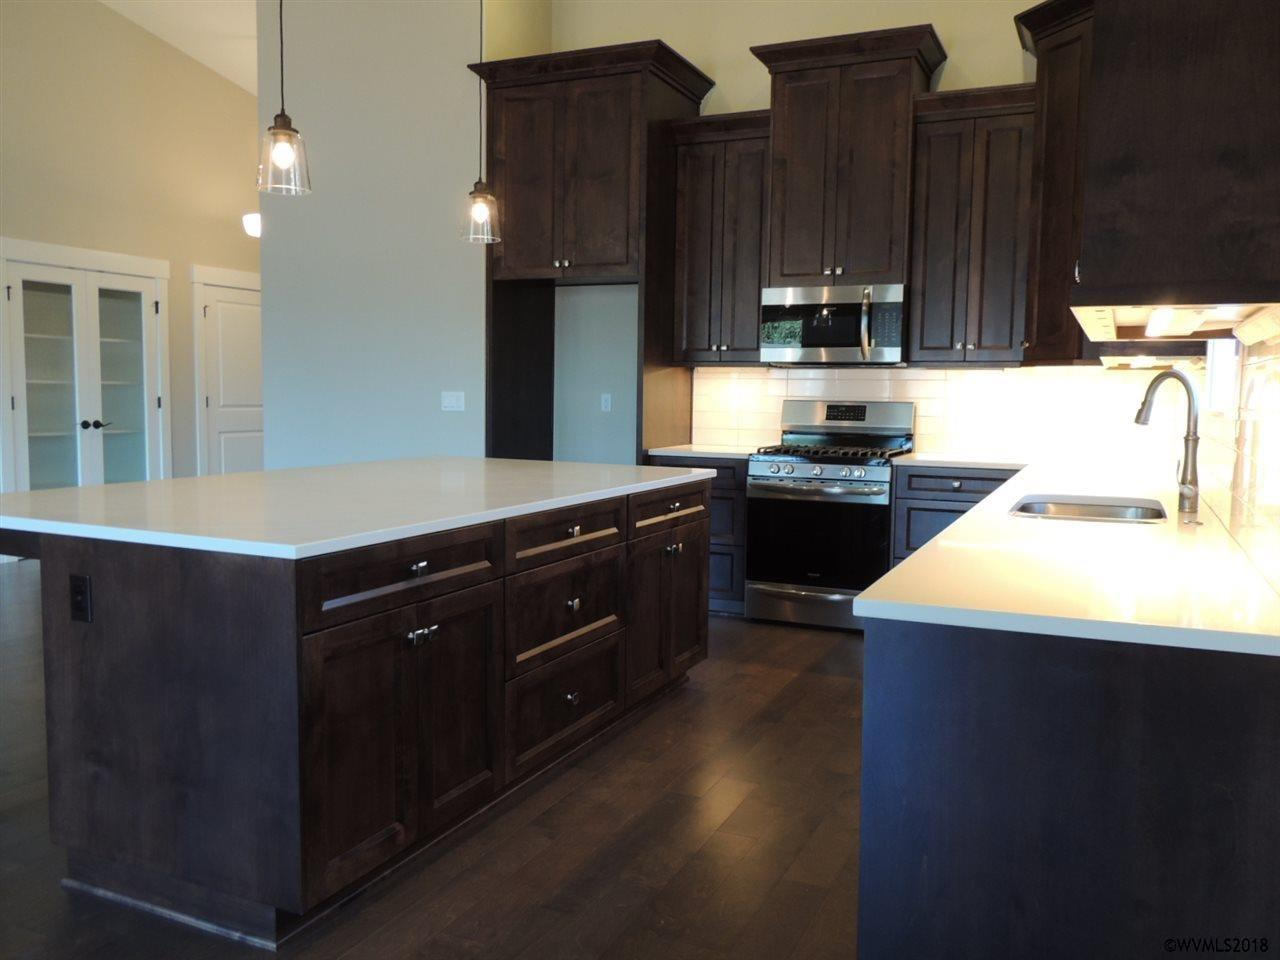 lot 21 kitchen